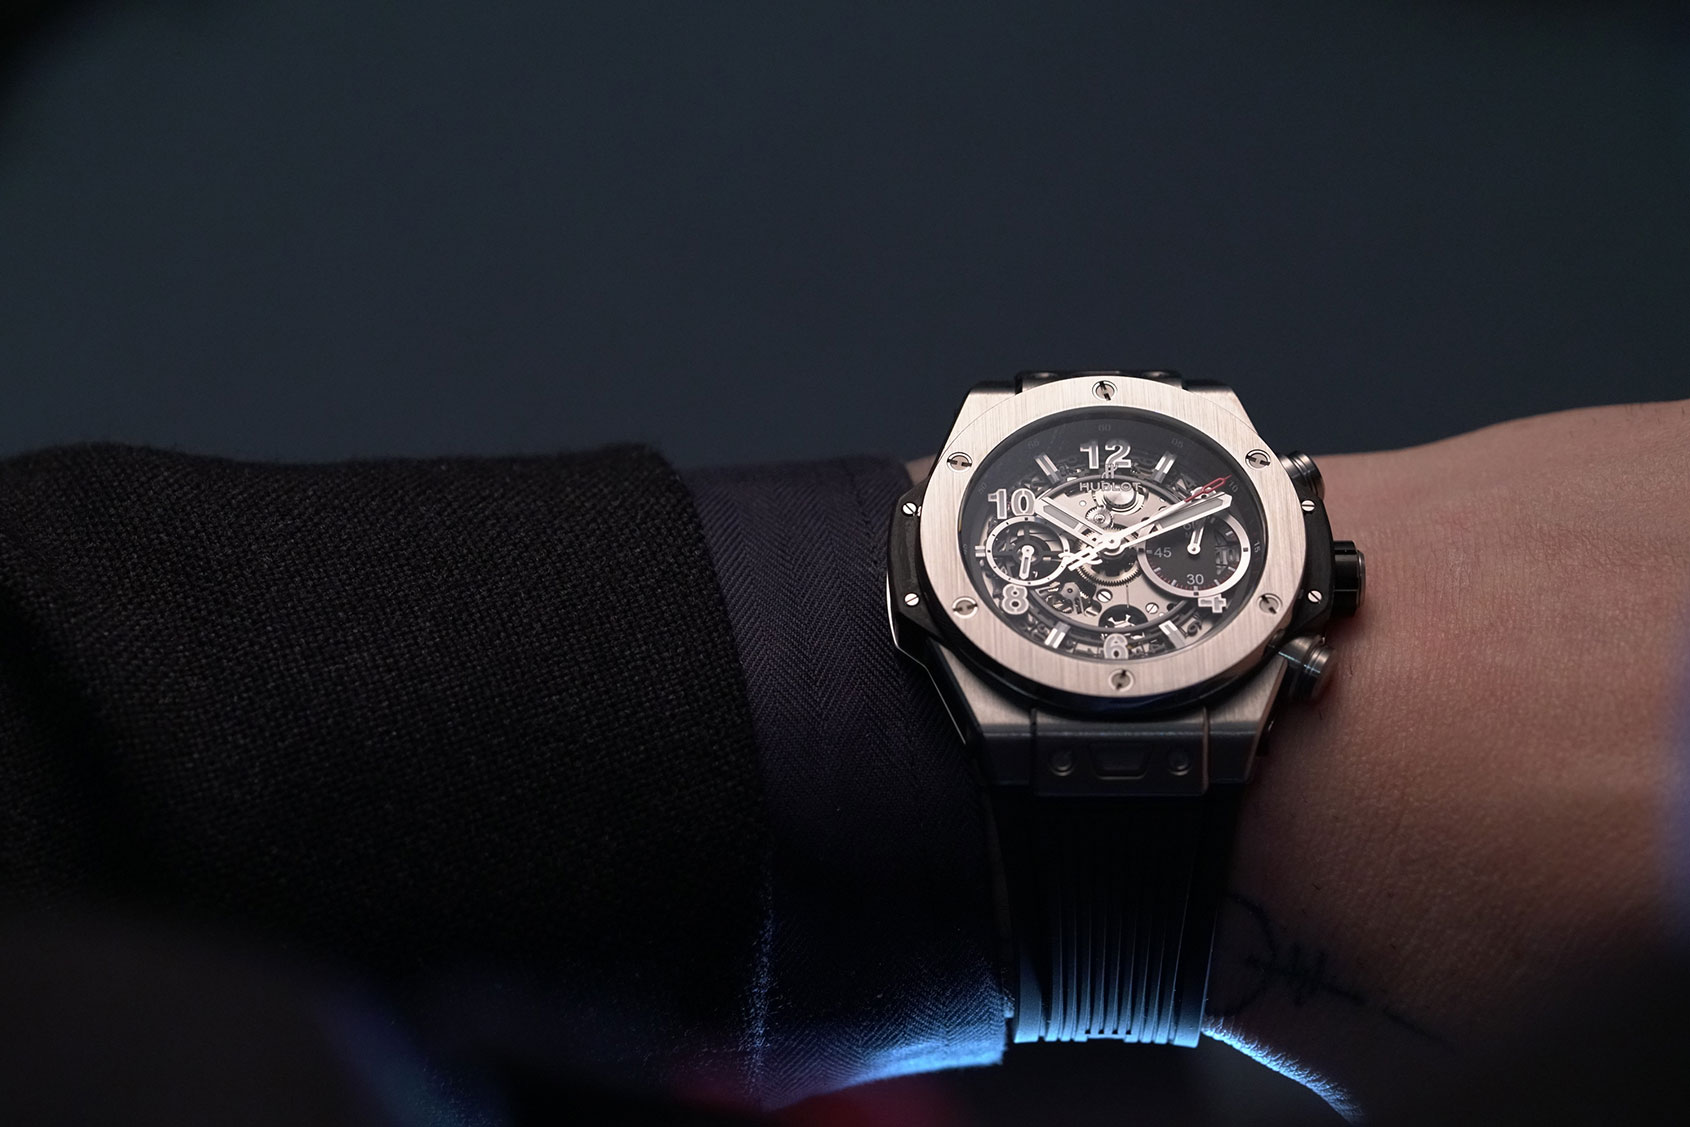 EDITOR'S PICK: It all started with a Big Bang! Now Hublot's hero is a bit smaller